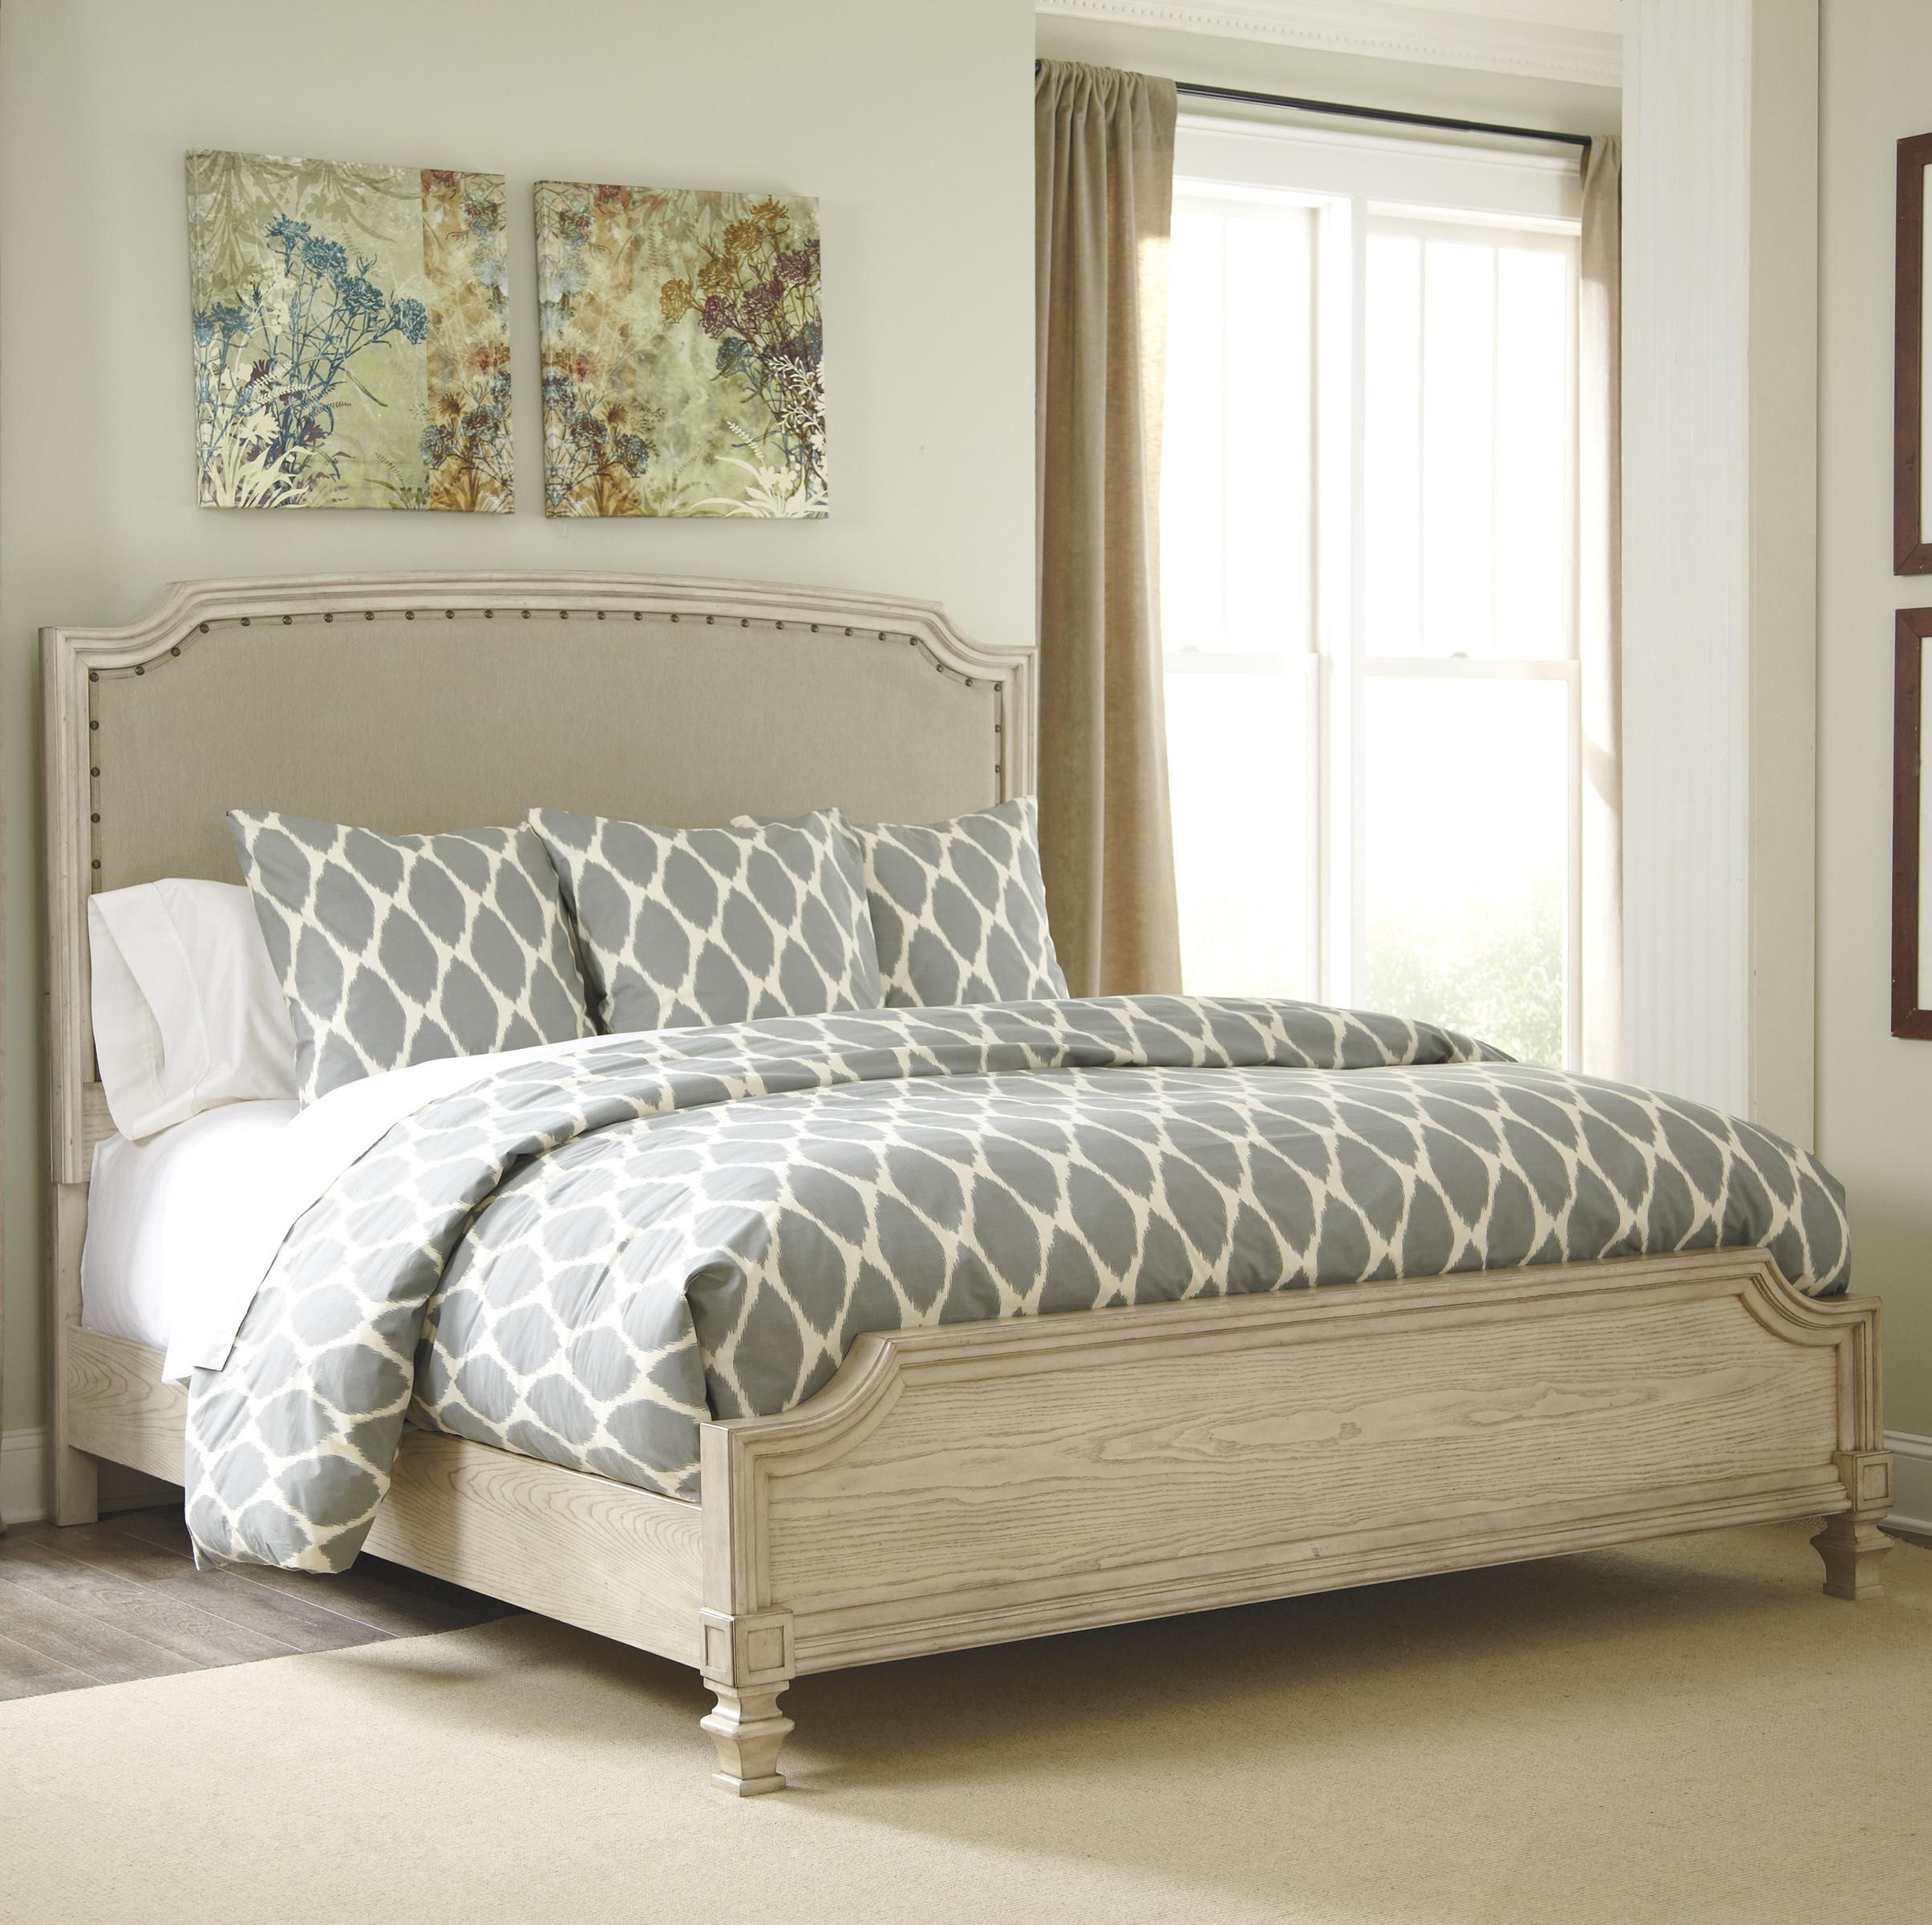 Demarlos Queen Upholstered Panel Bed by Signature Design